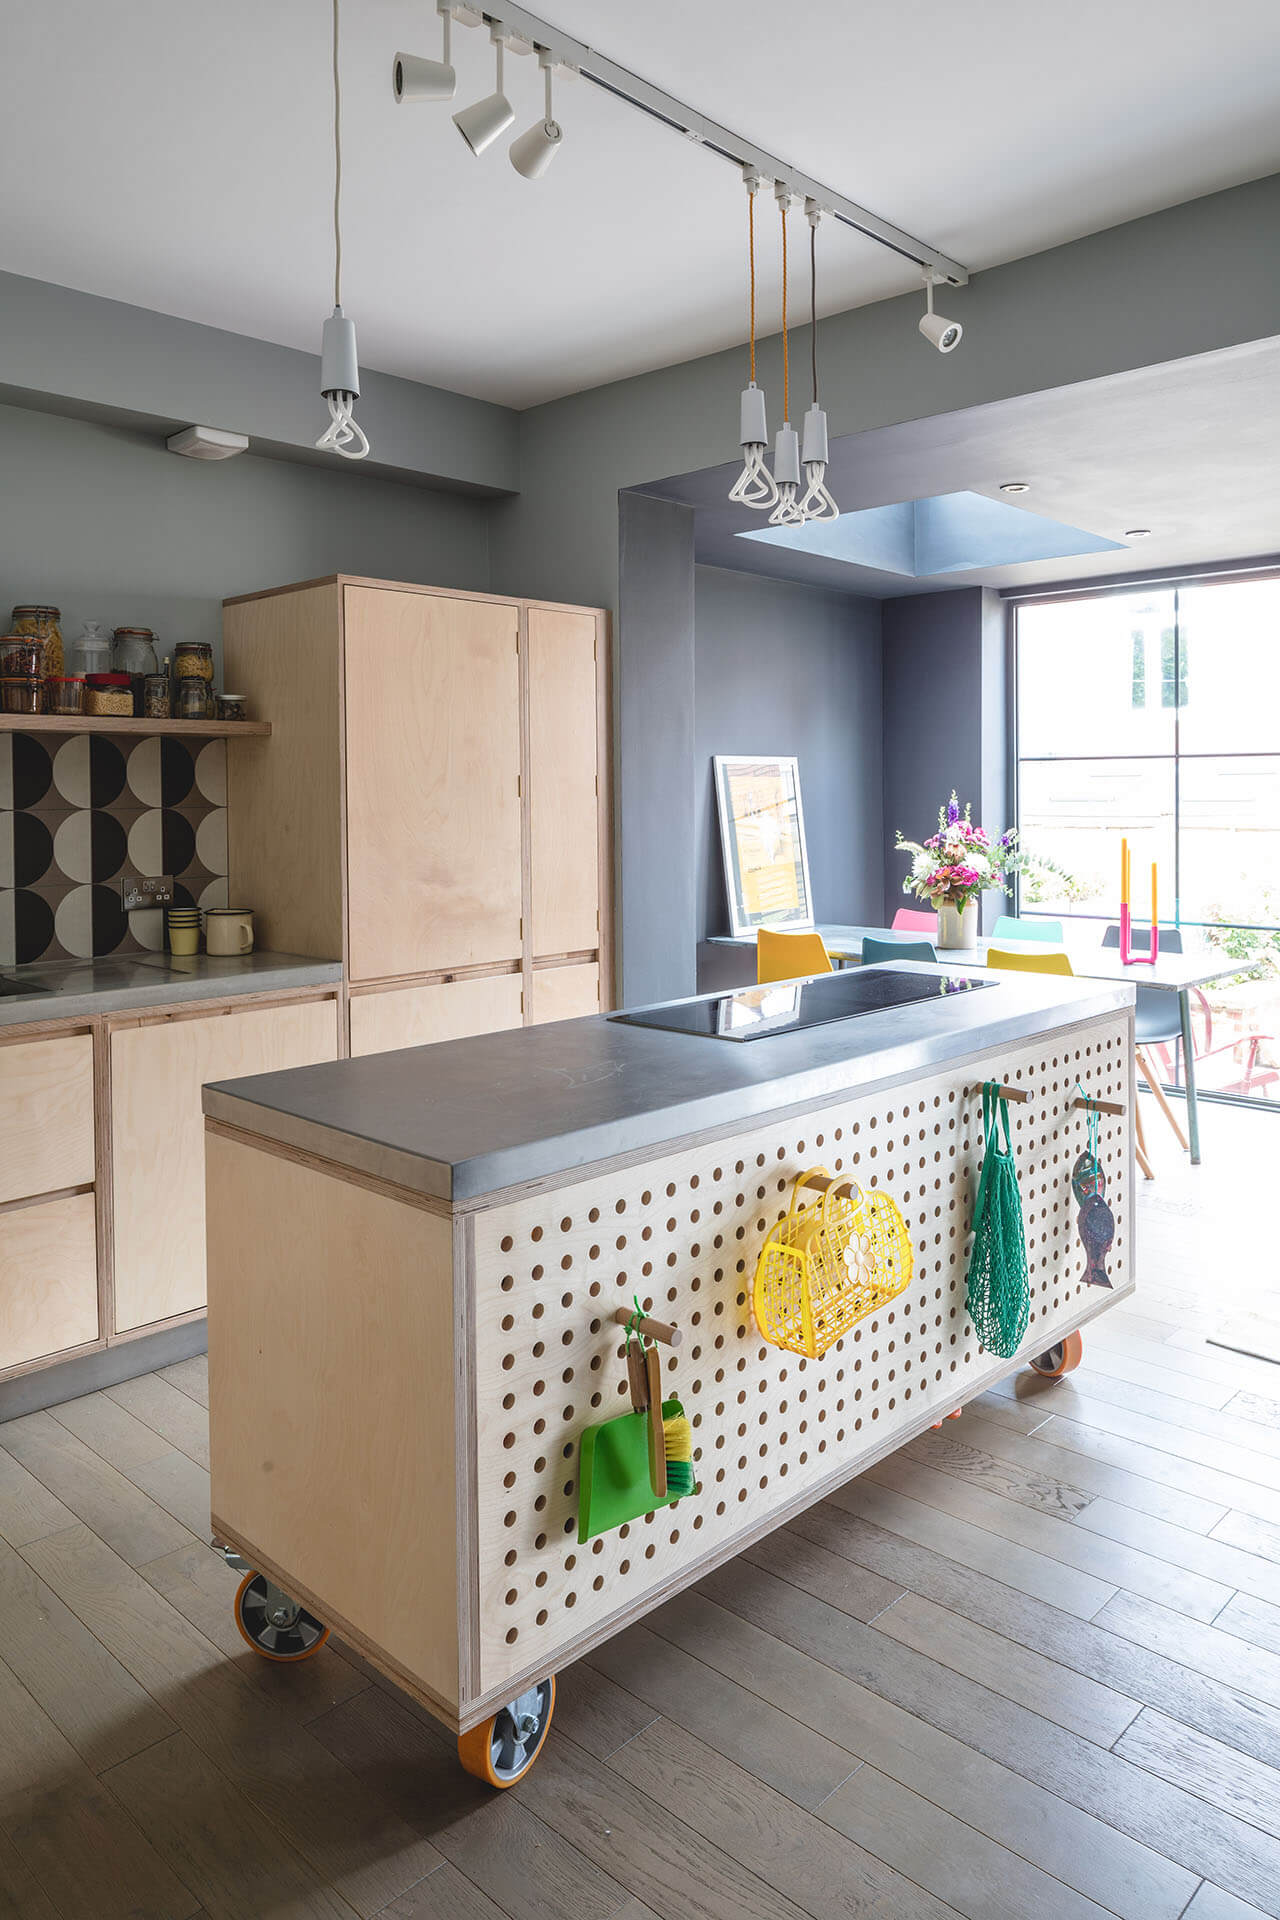 Pegboard Plywood Kitchen with movable island and stainless steel worktop